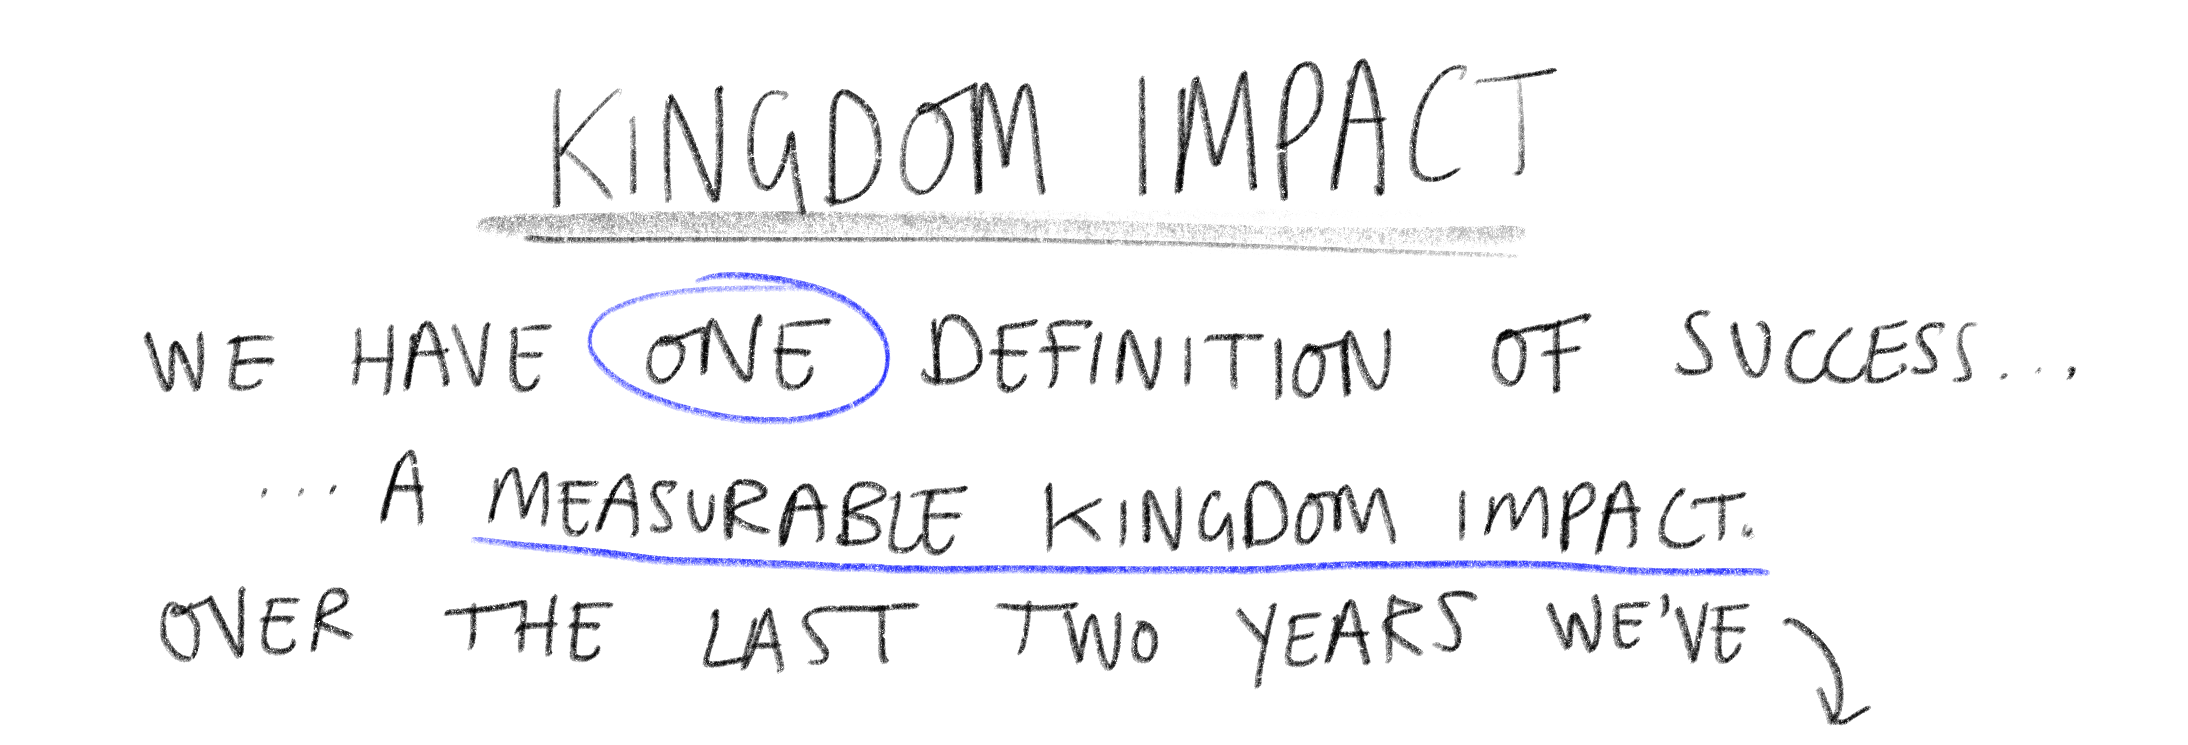 We have one definition of success - a measurable Kingdom impact. Over the last two years we've worked with 350+ UK churches and  conducted over 200 hours of free consultancy.